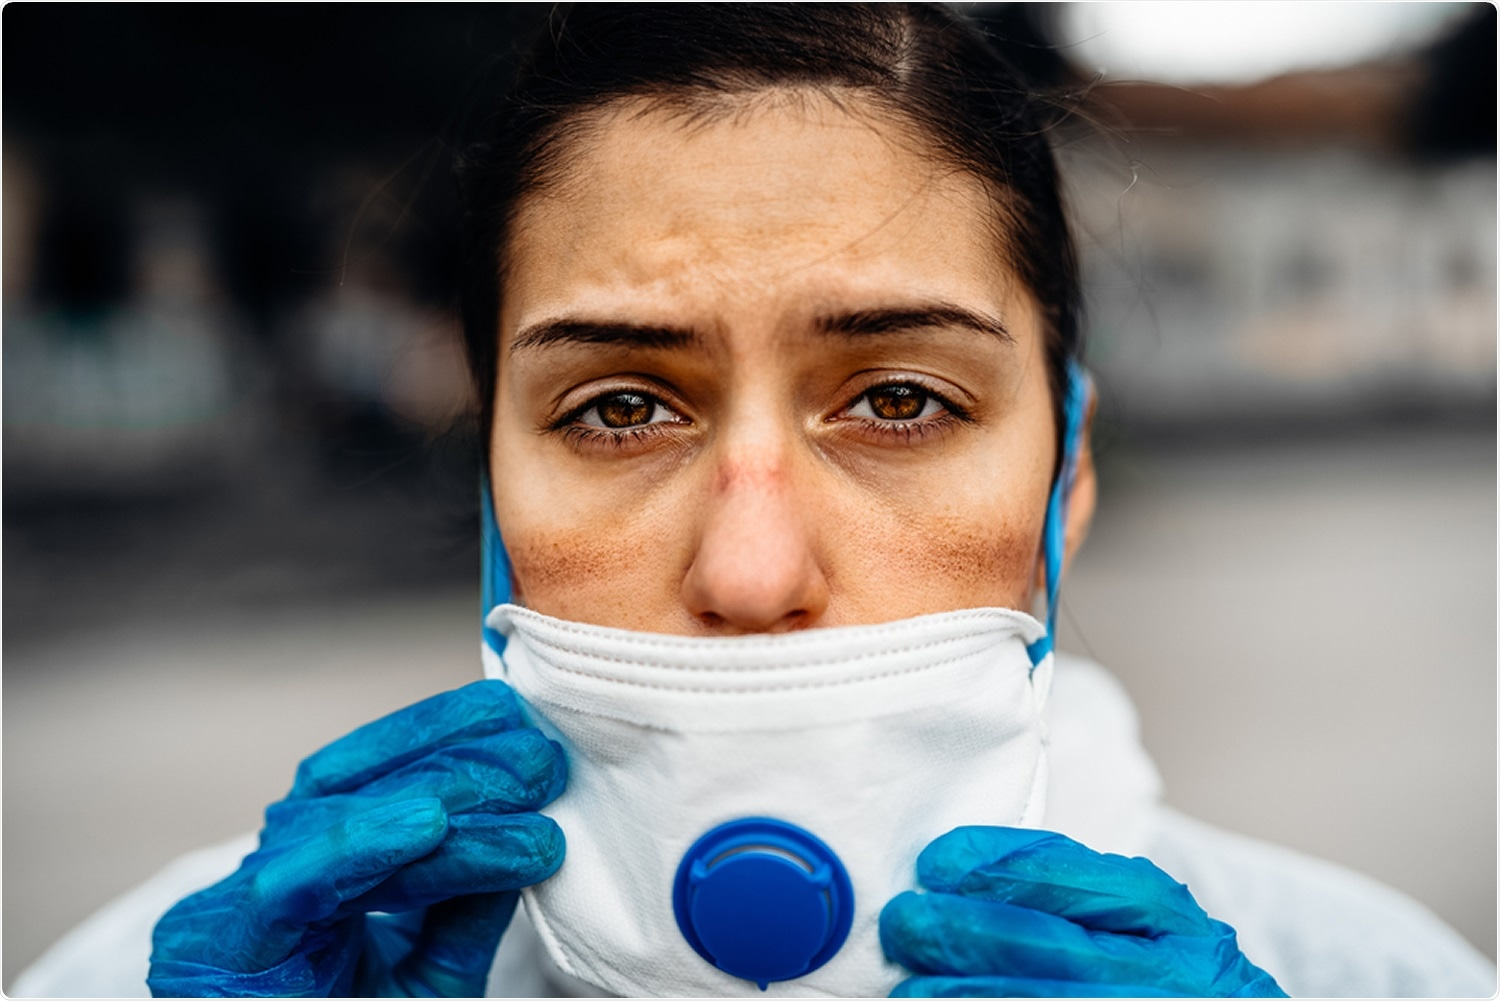 Study: Promoting Resilience in Healthcare Workers during the COVID-19 Pandemic with a Brief Online Intervention. Image Credit: Eldar Nurkovic / Shutterstock